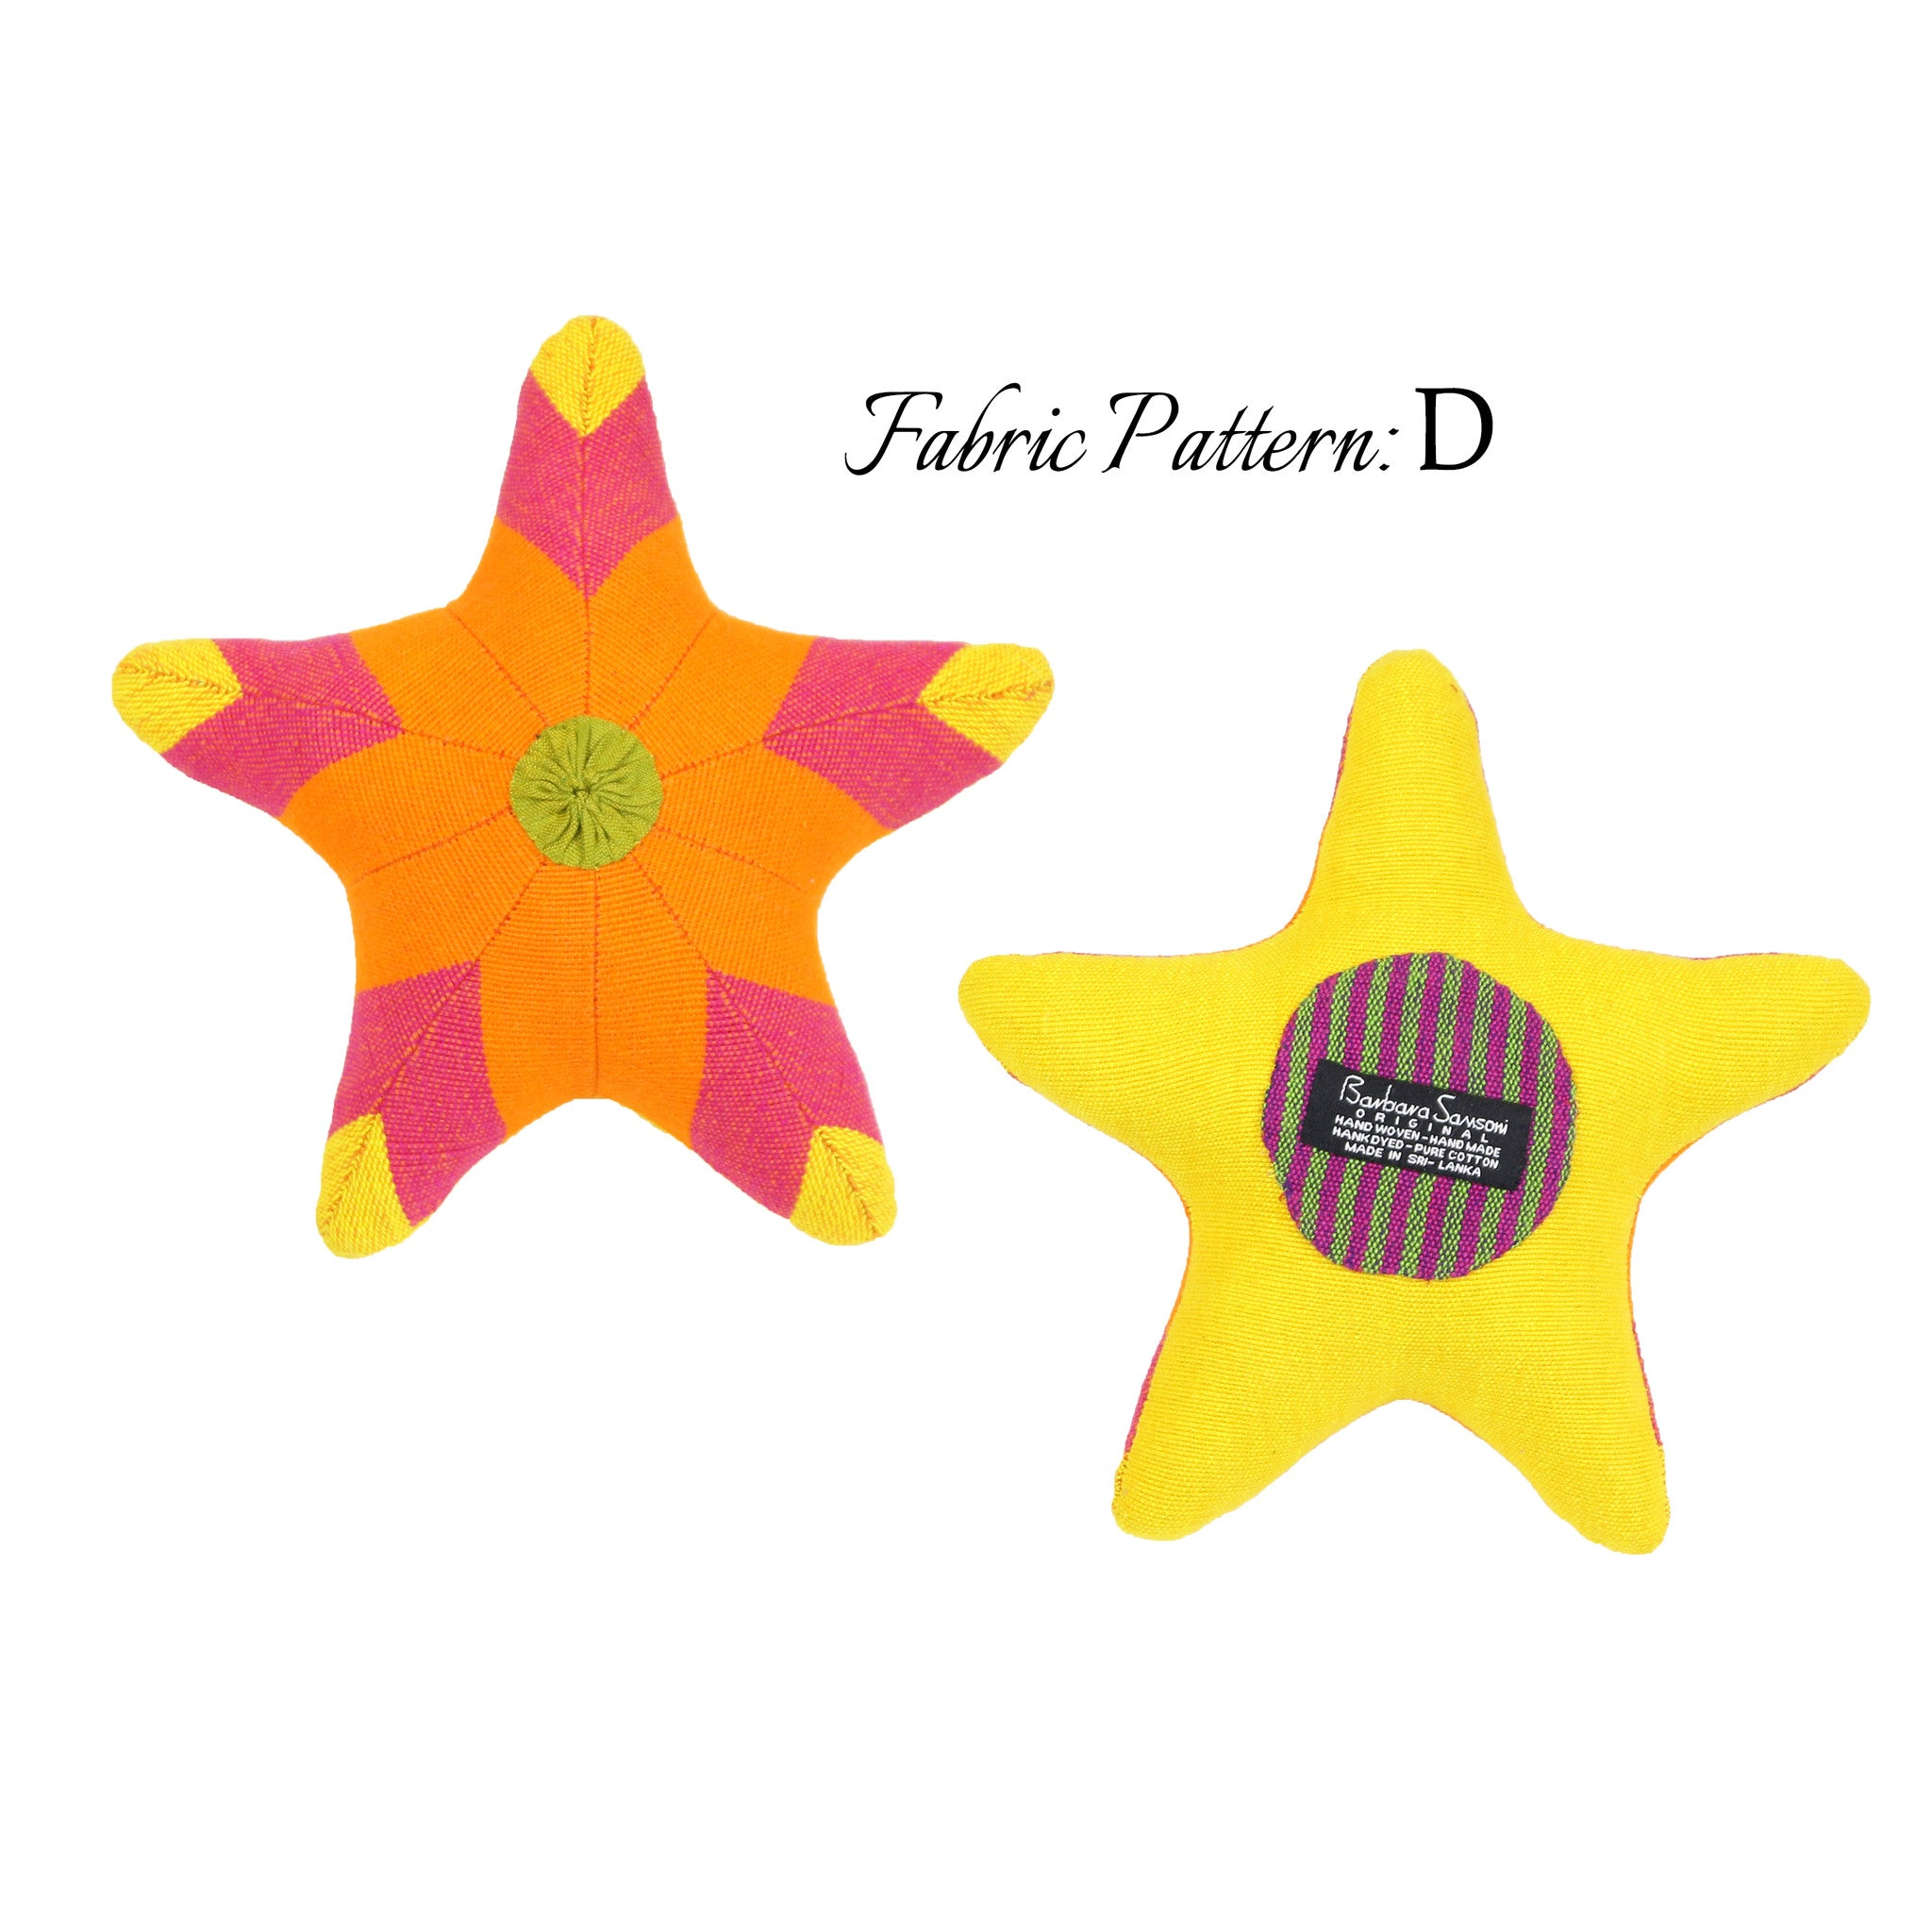 Sarah, the Starfish - pattern D (front & back view)